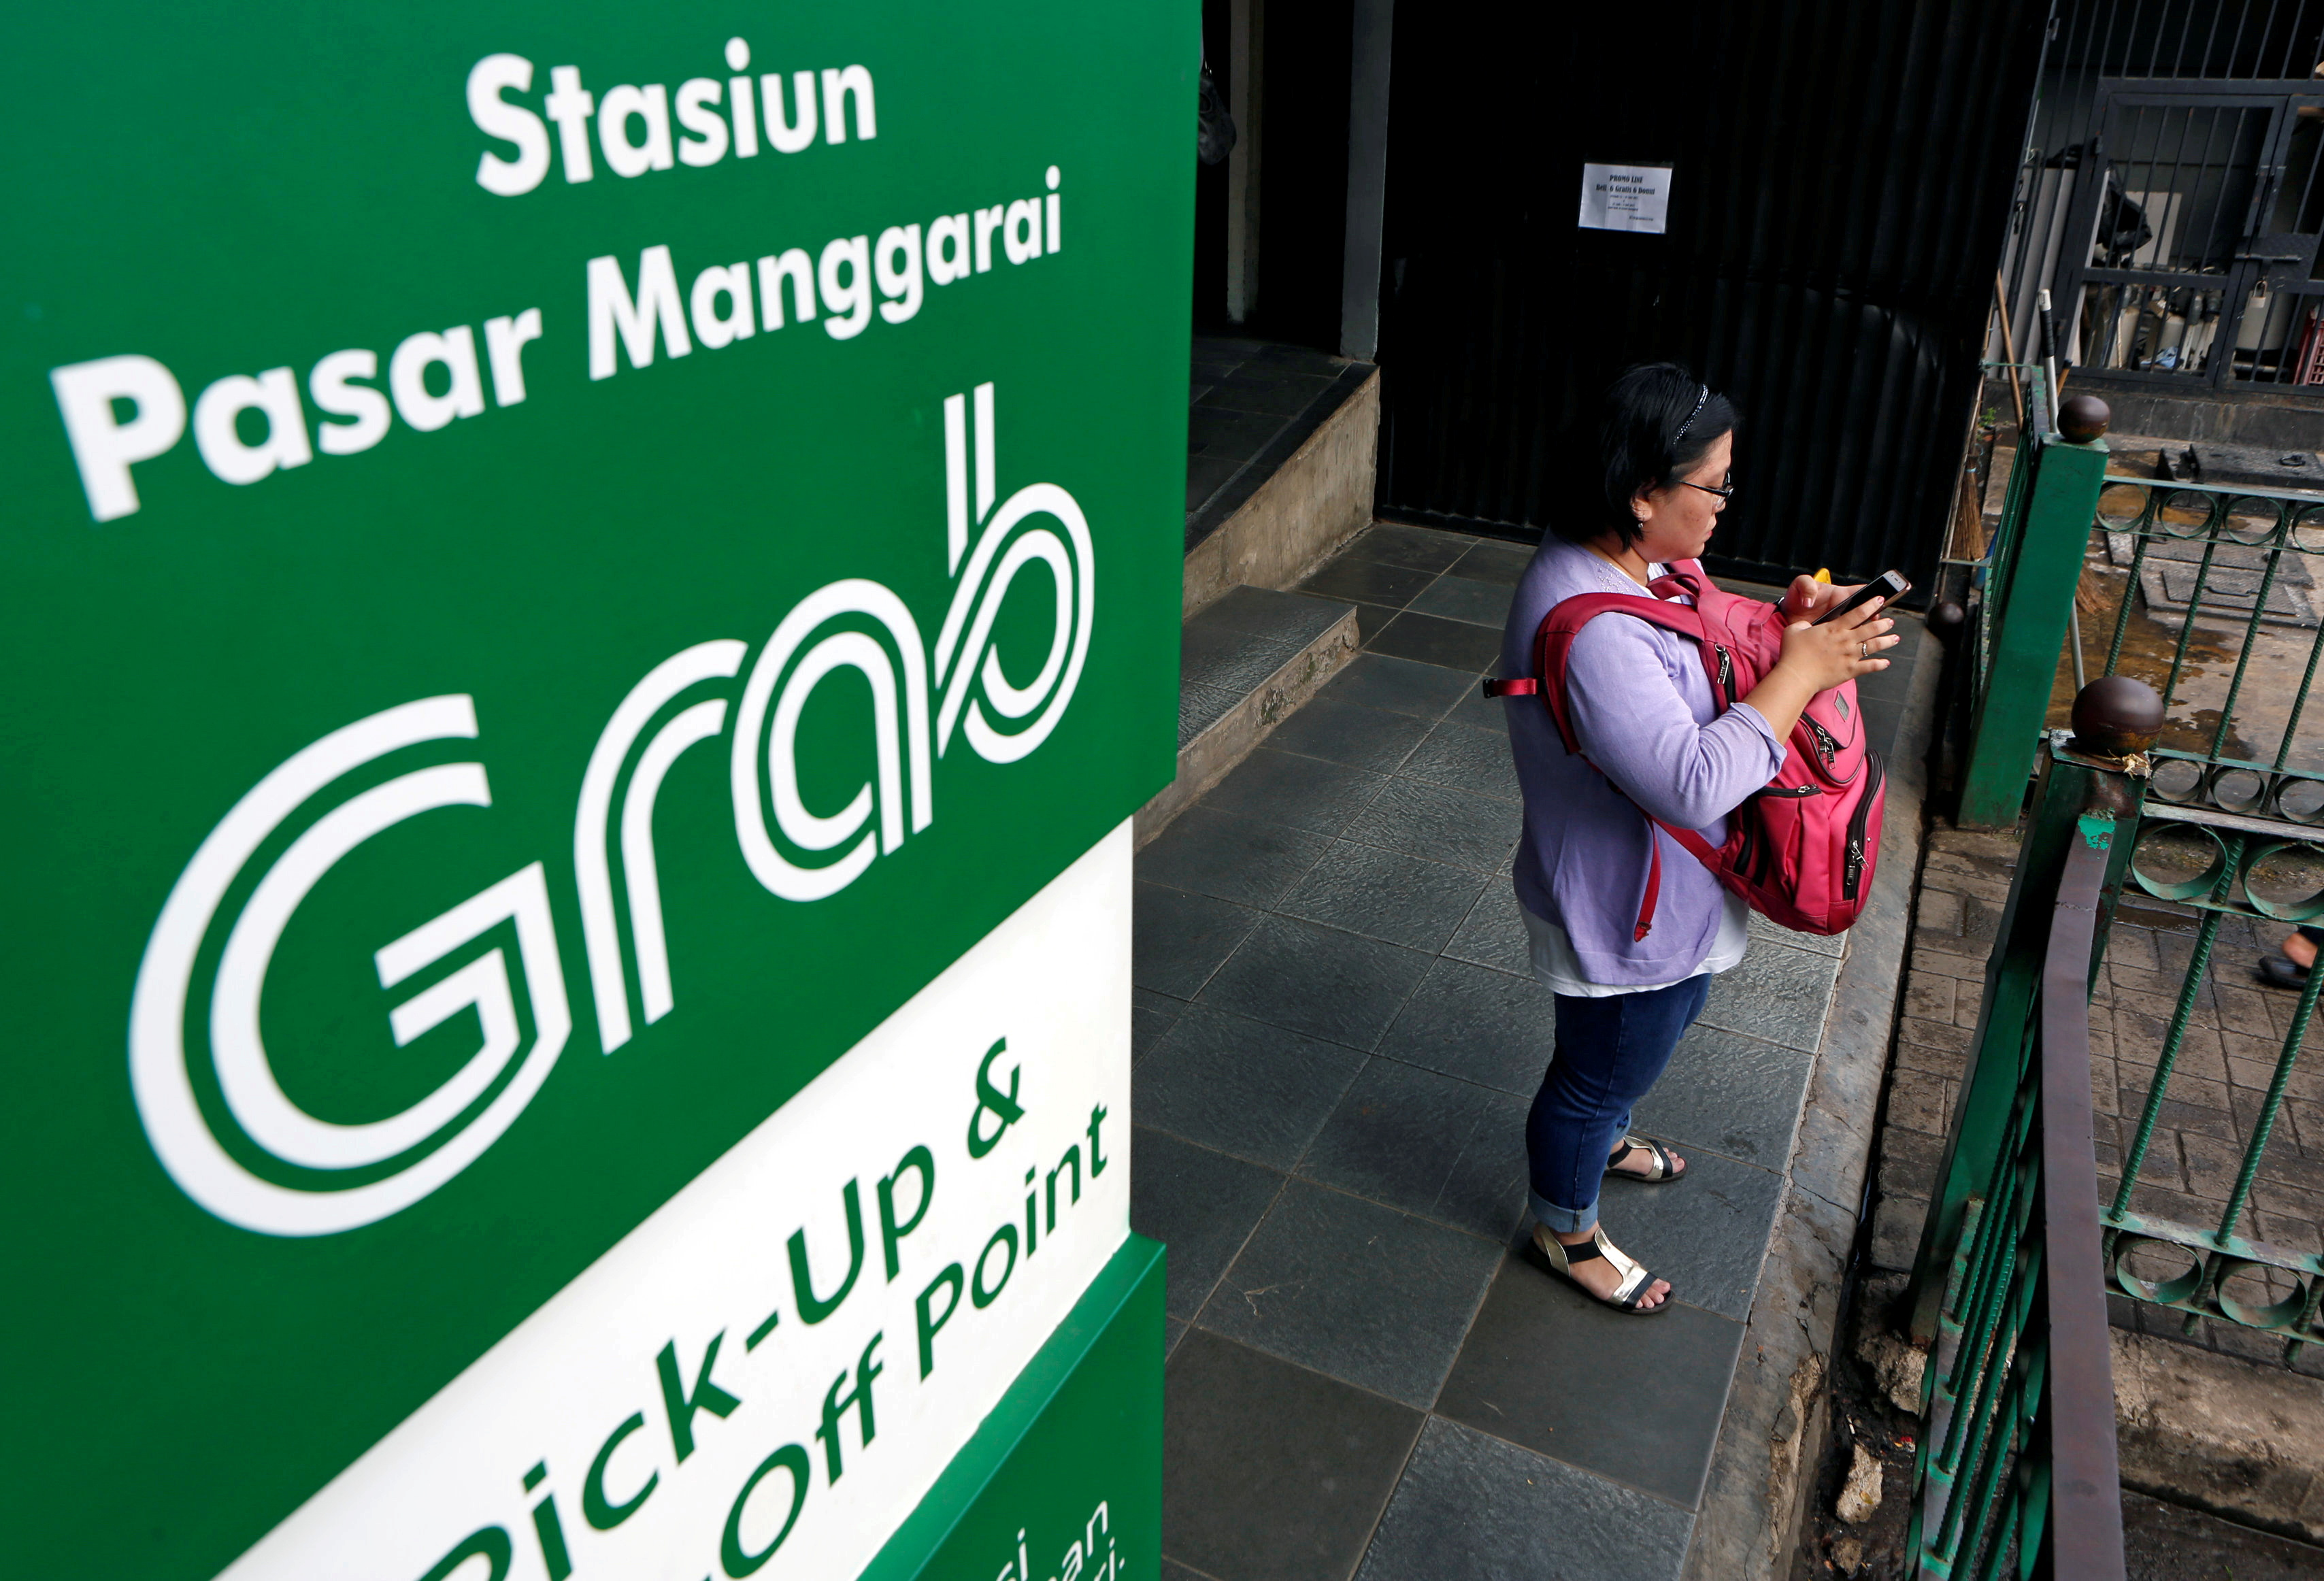 A woman uses her phone near a sign for the online ride-hailing service Grab at the Manggarai train station in Jakarta, Indonesia July 3, 2017. REUTERS/Agoes Rudianto/File Photo